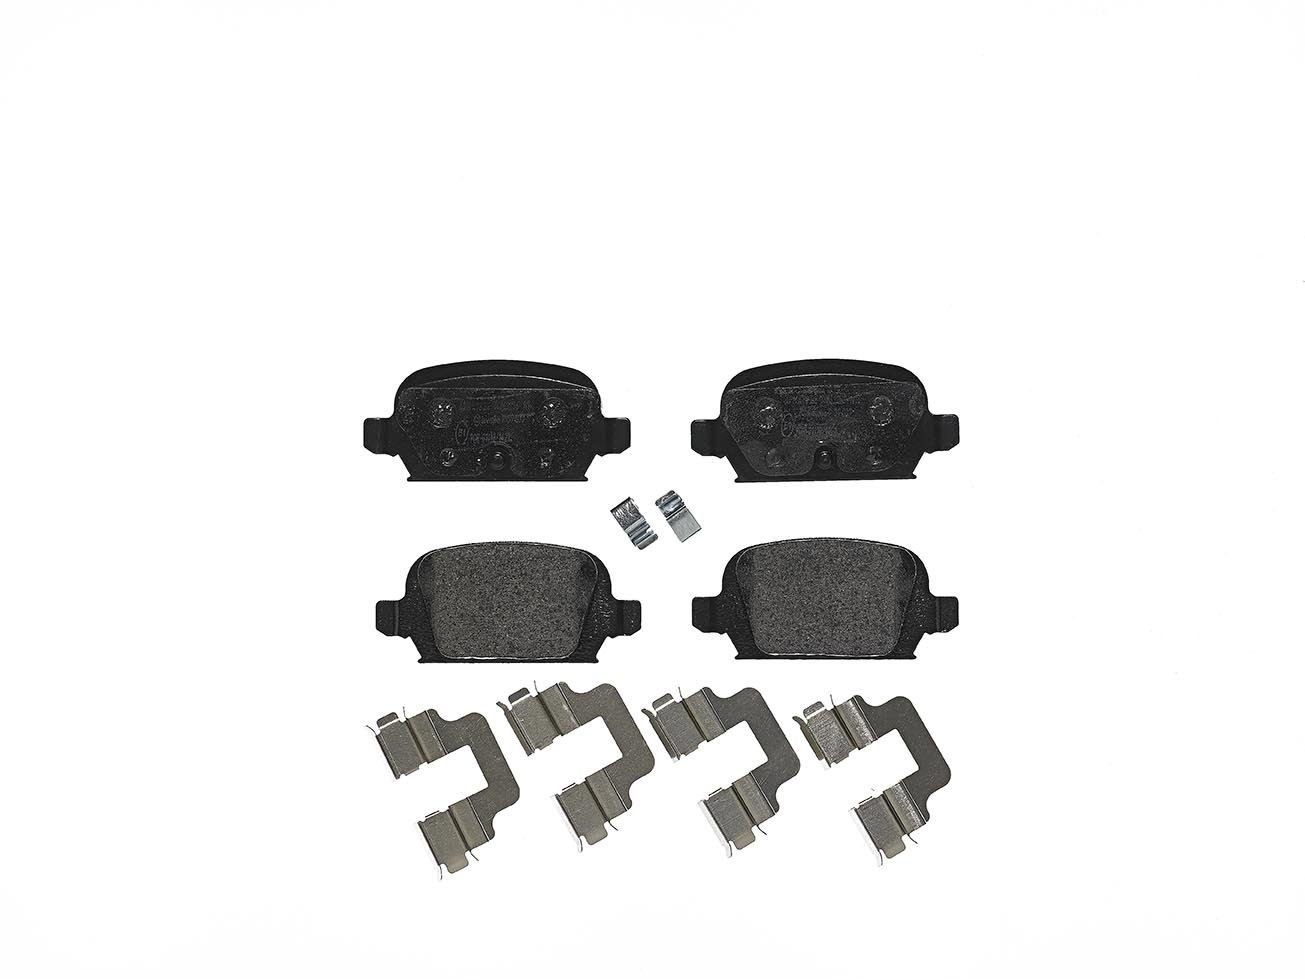 VAUXHALL TIGRA 1.3 CDTi 1.4 1.8 2004-2009 FRONT AND REAR BRAKE DISC PADS NEW